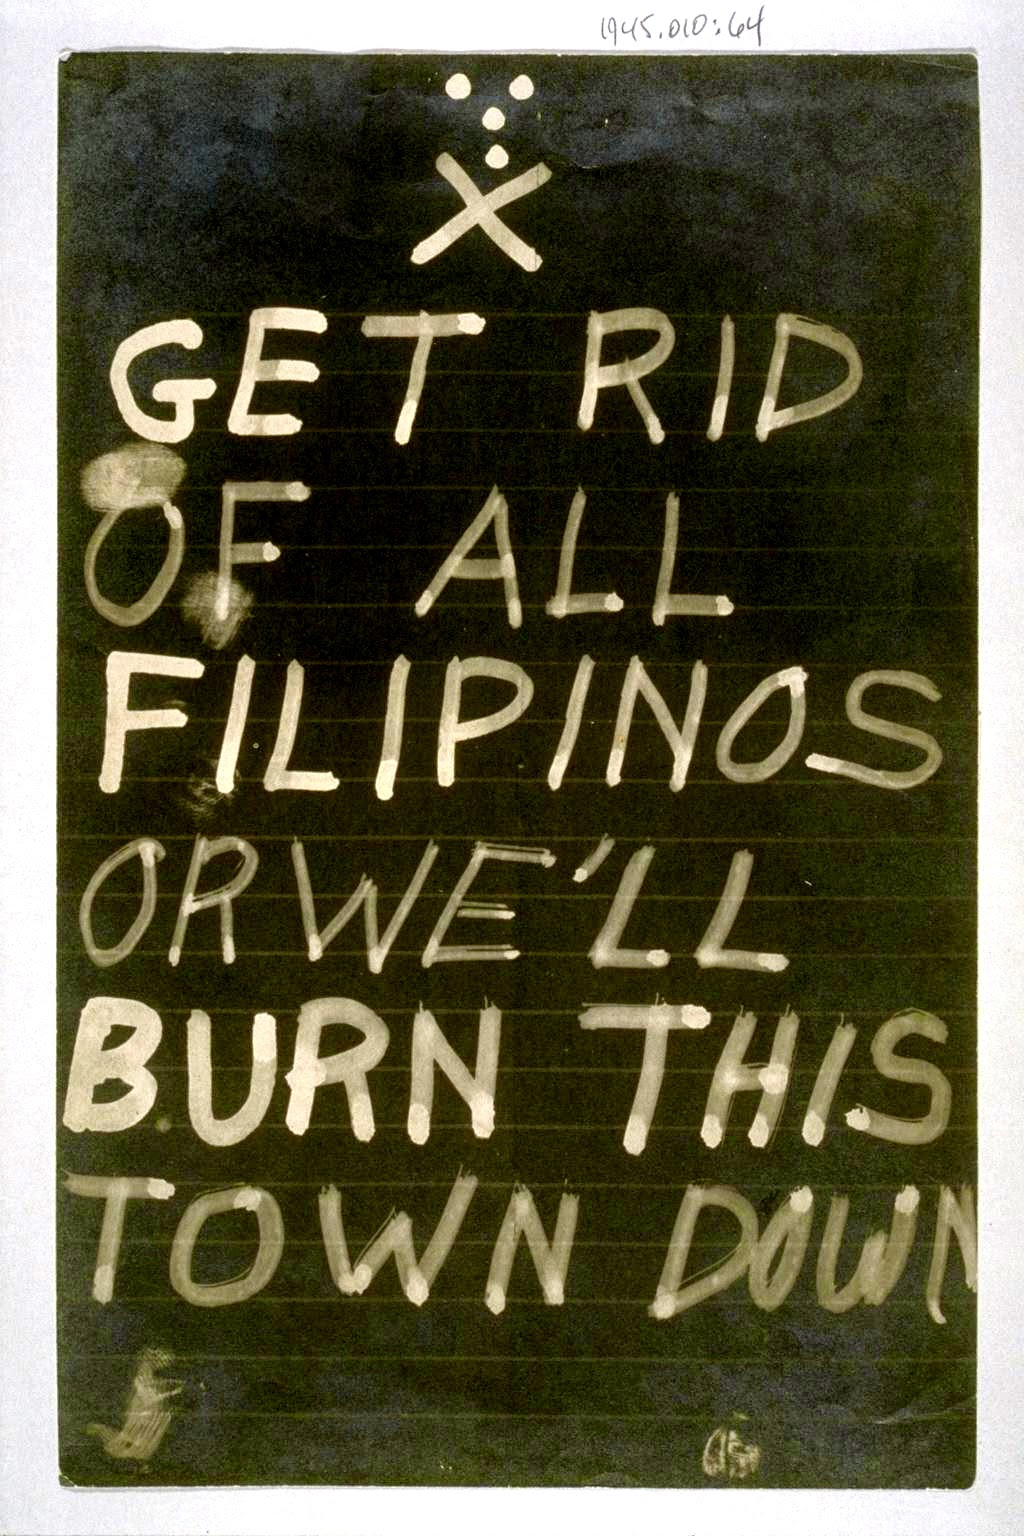 No Filipinos Allowed